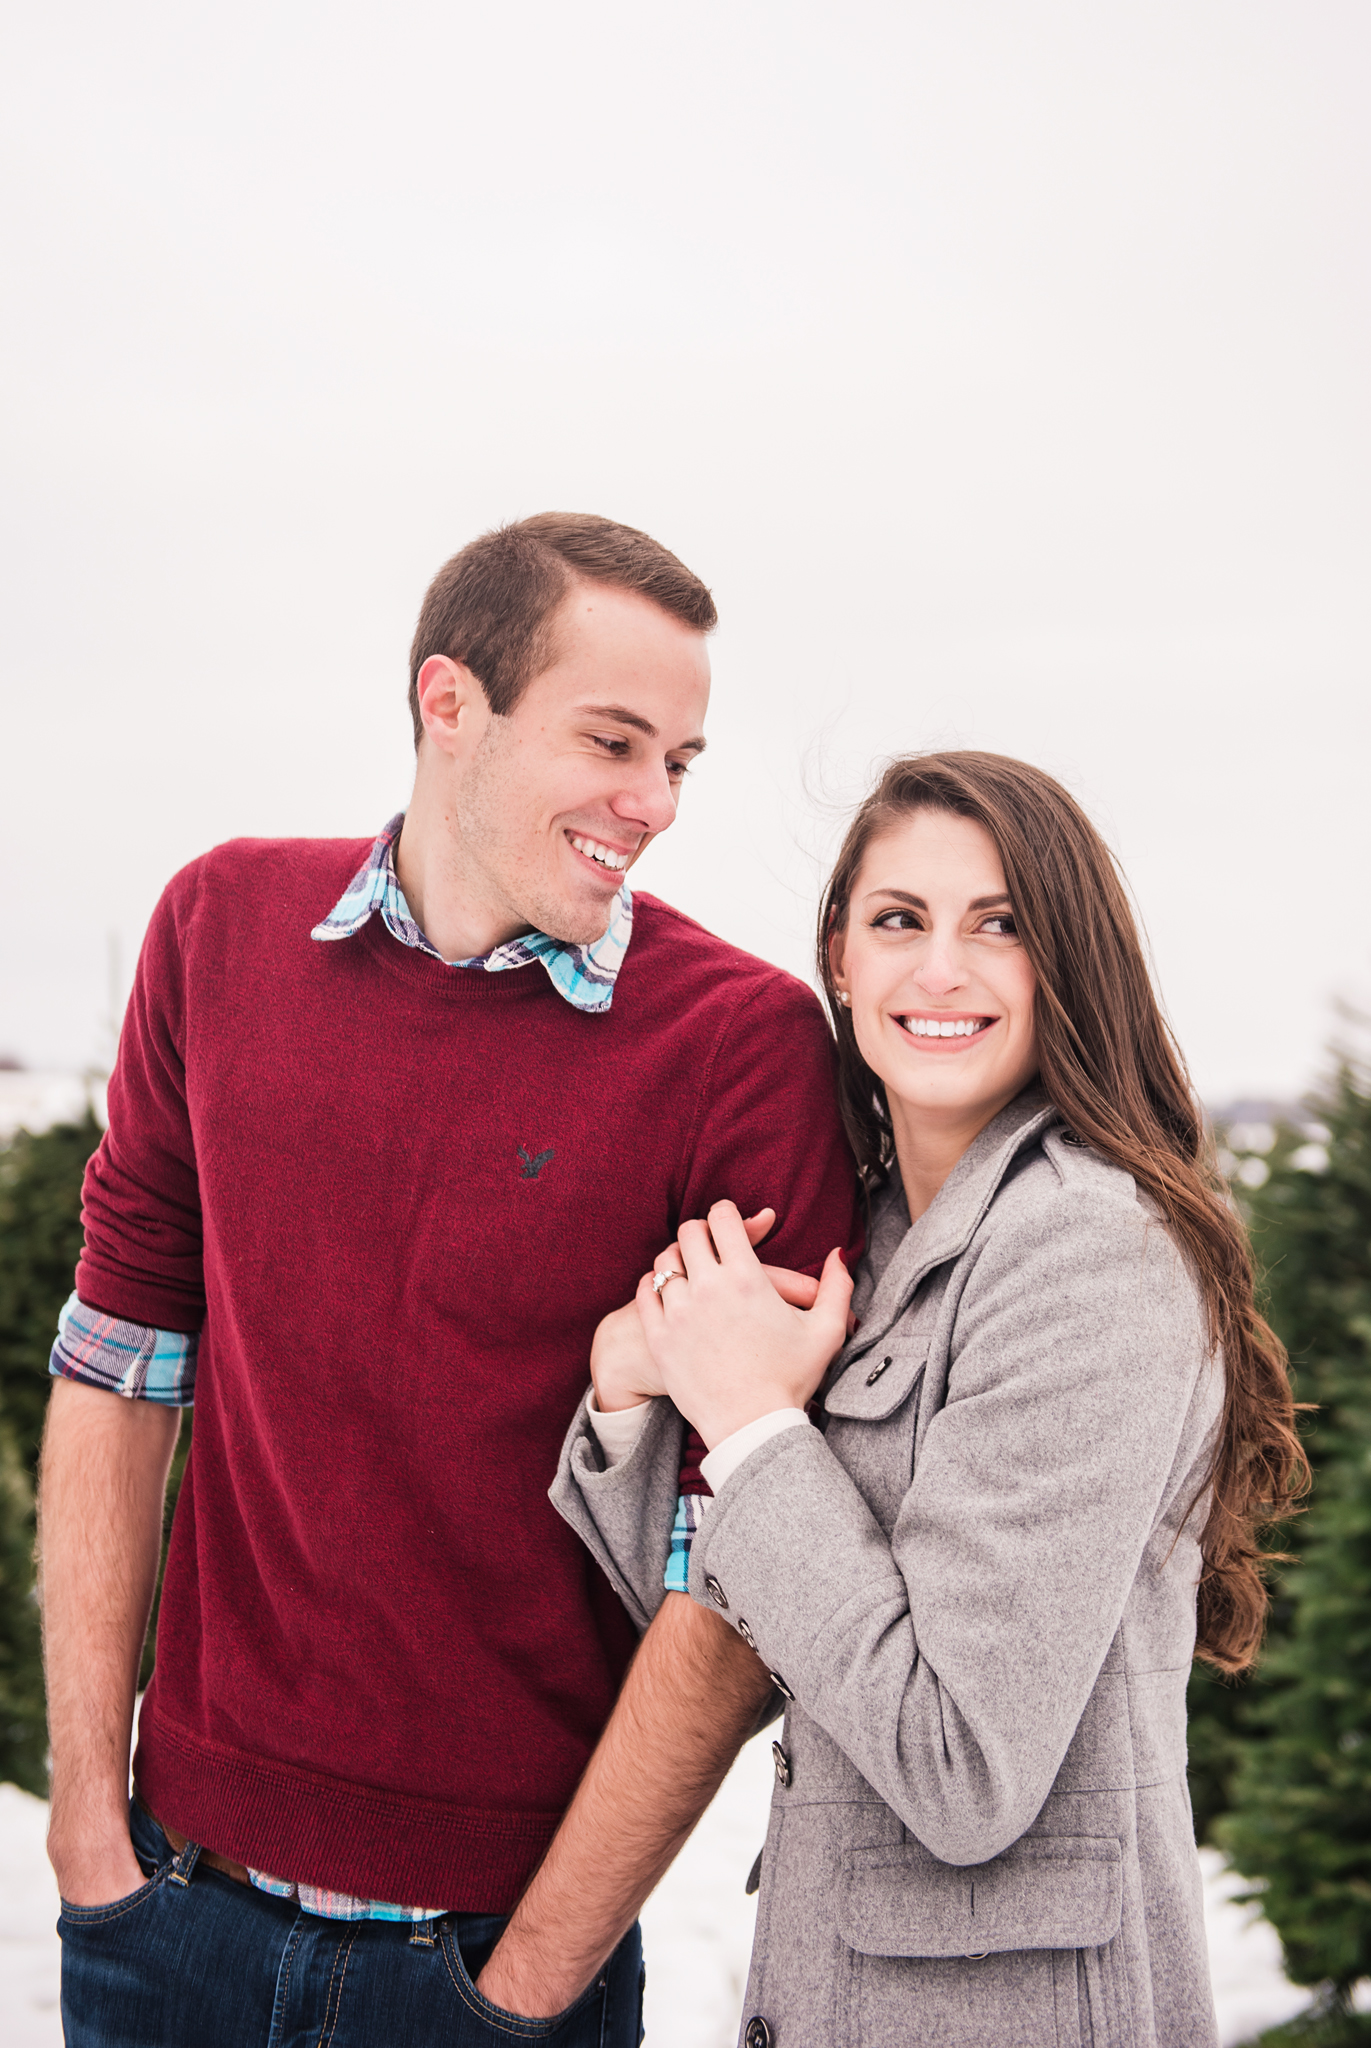 Woody_Acres_Rochester_Engagement_Session_JILL_STUDIO_Rochester_NY_Photographer_152733.jpg